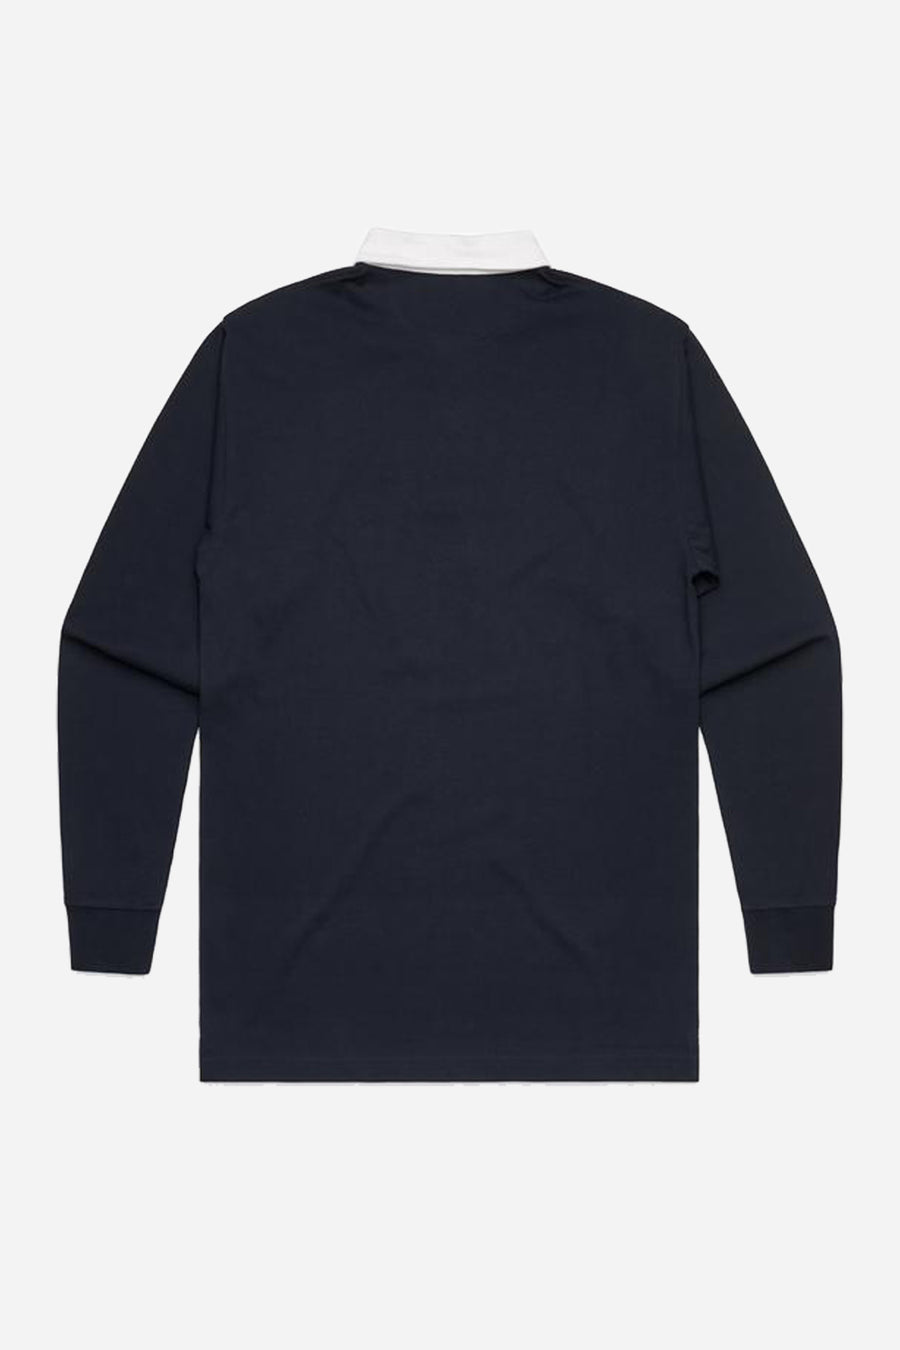 Contemporary Rugby Navy Unisex